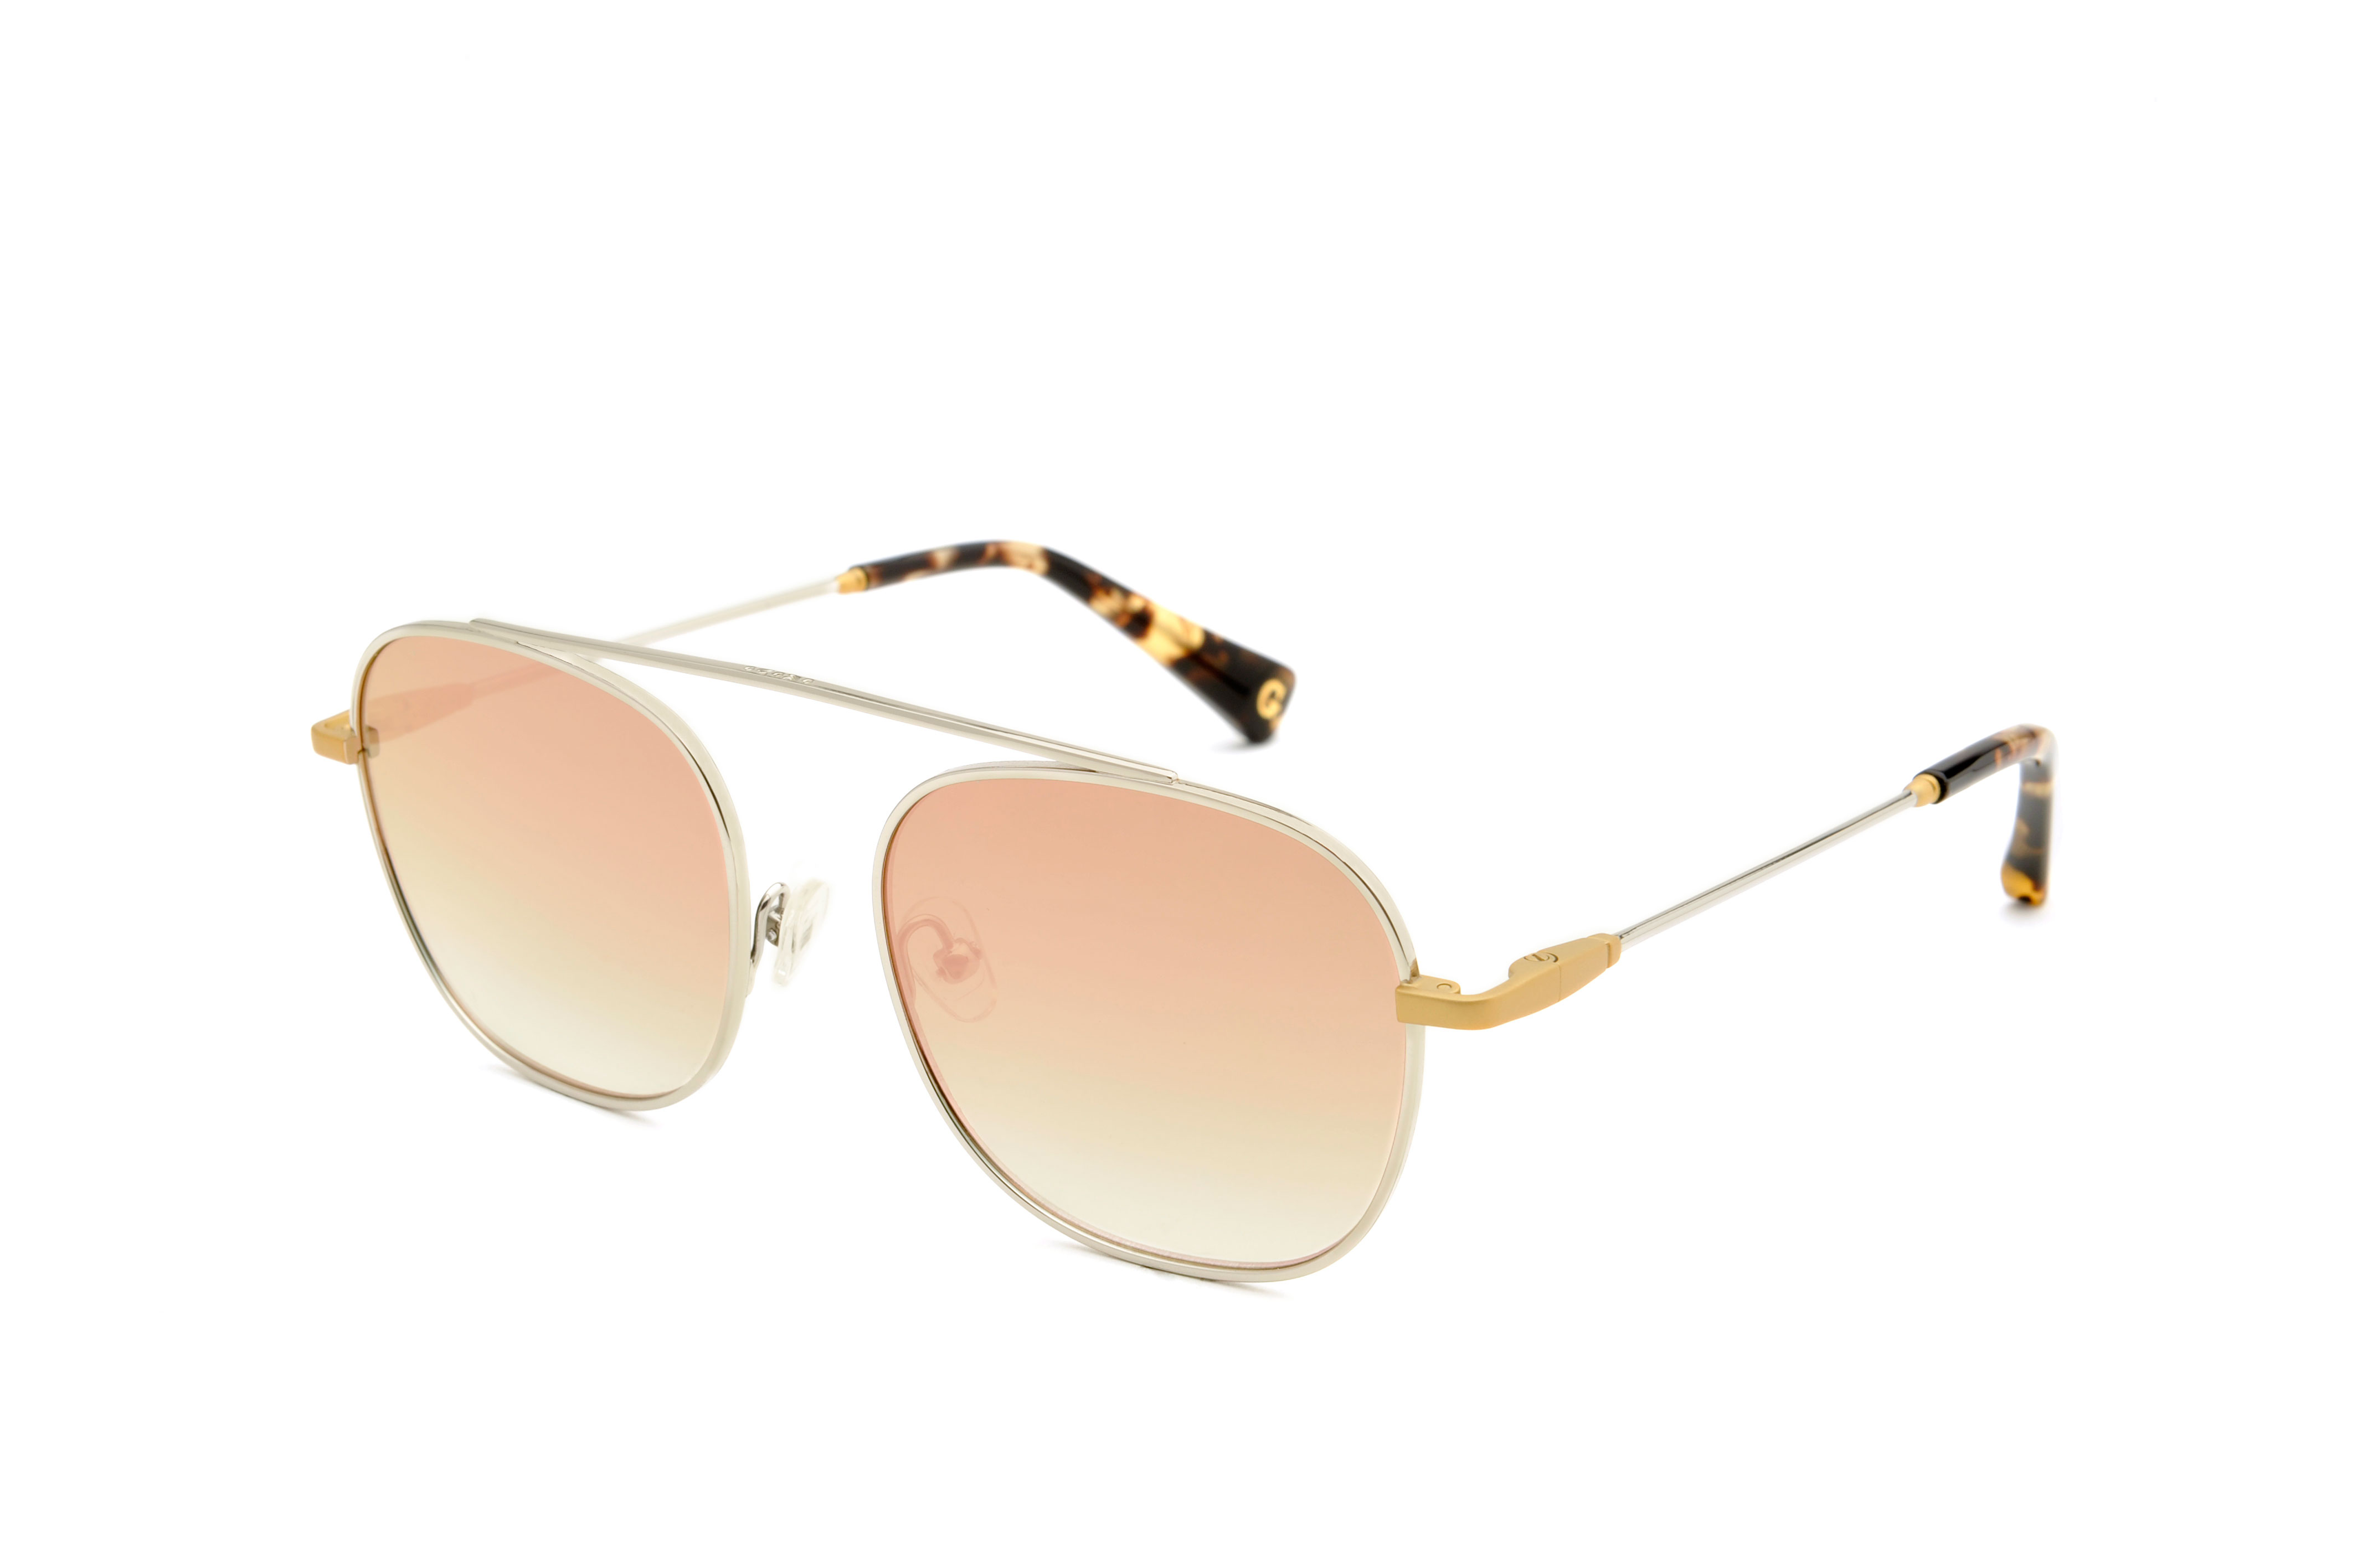 Moon metal aviator gold sunglasses by GIGI Studios